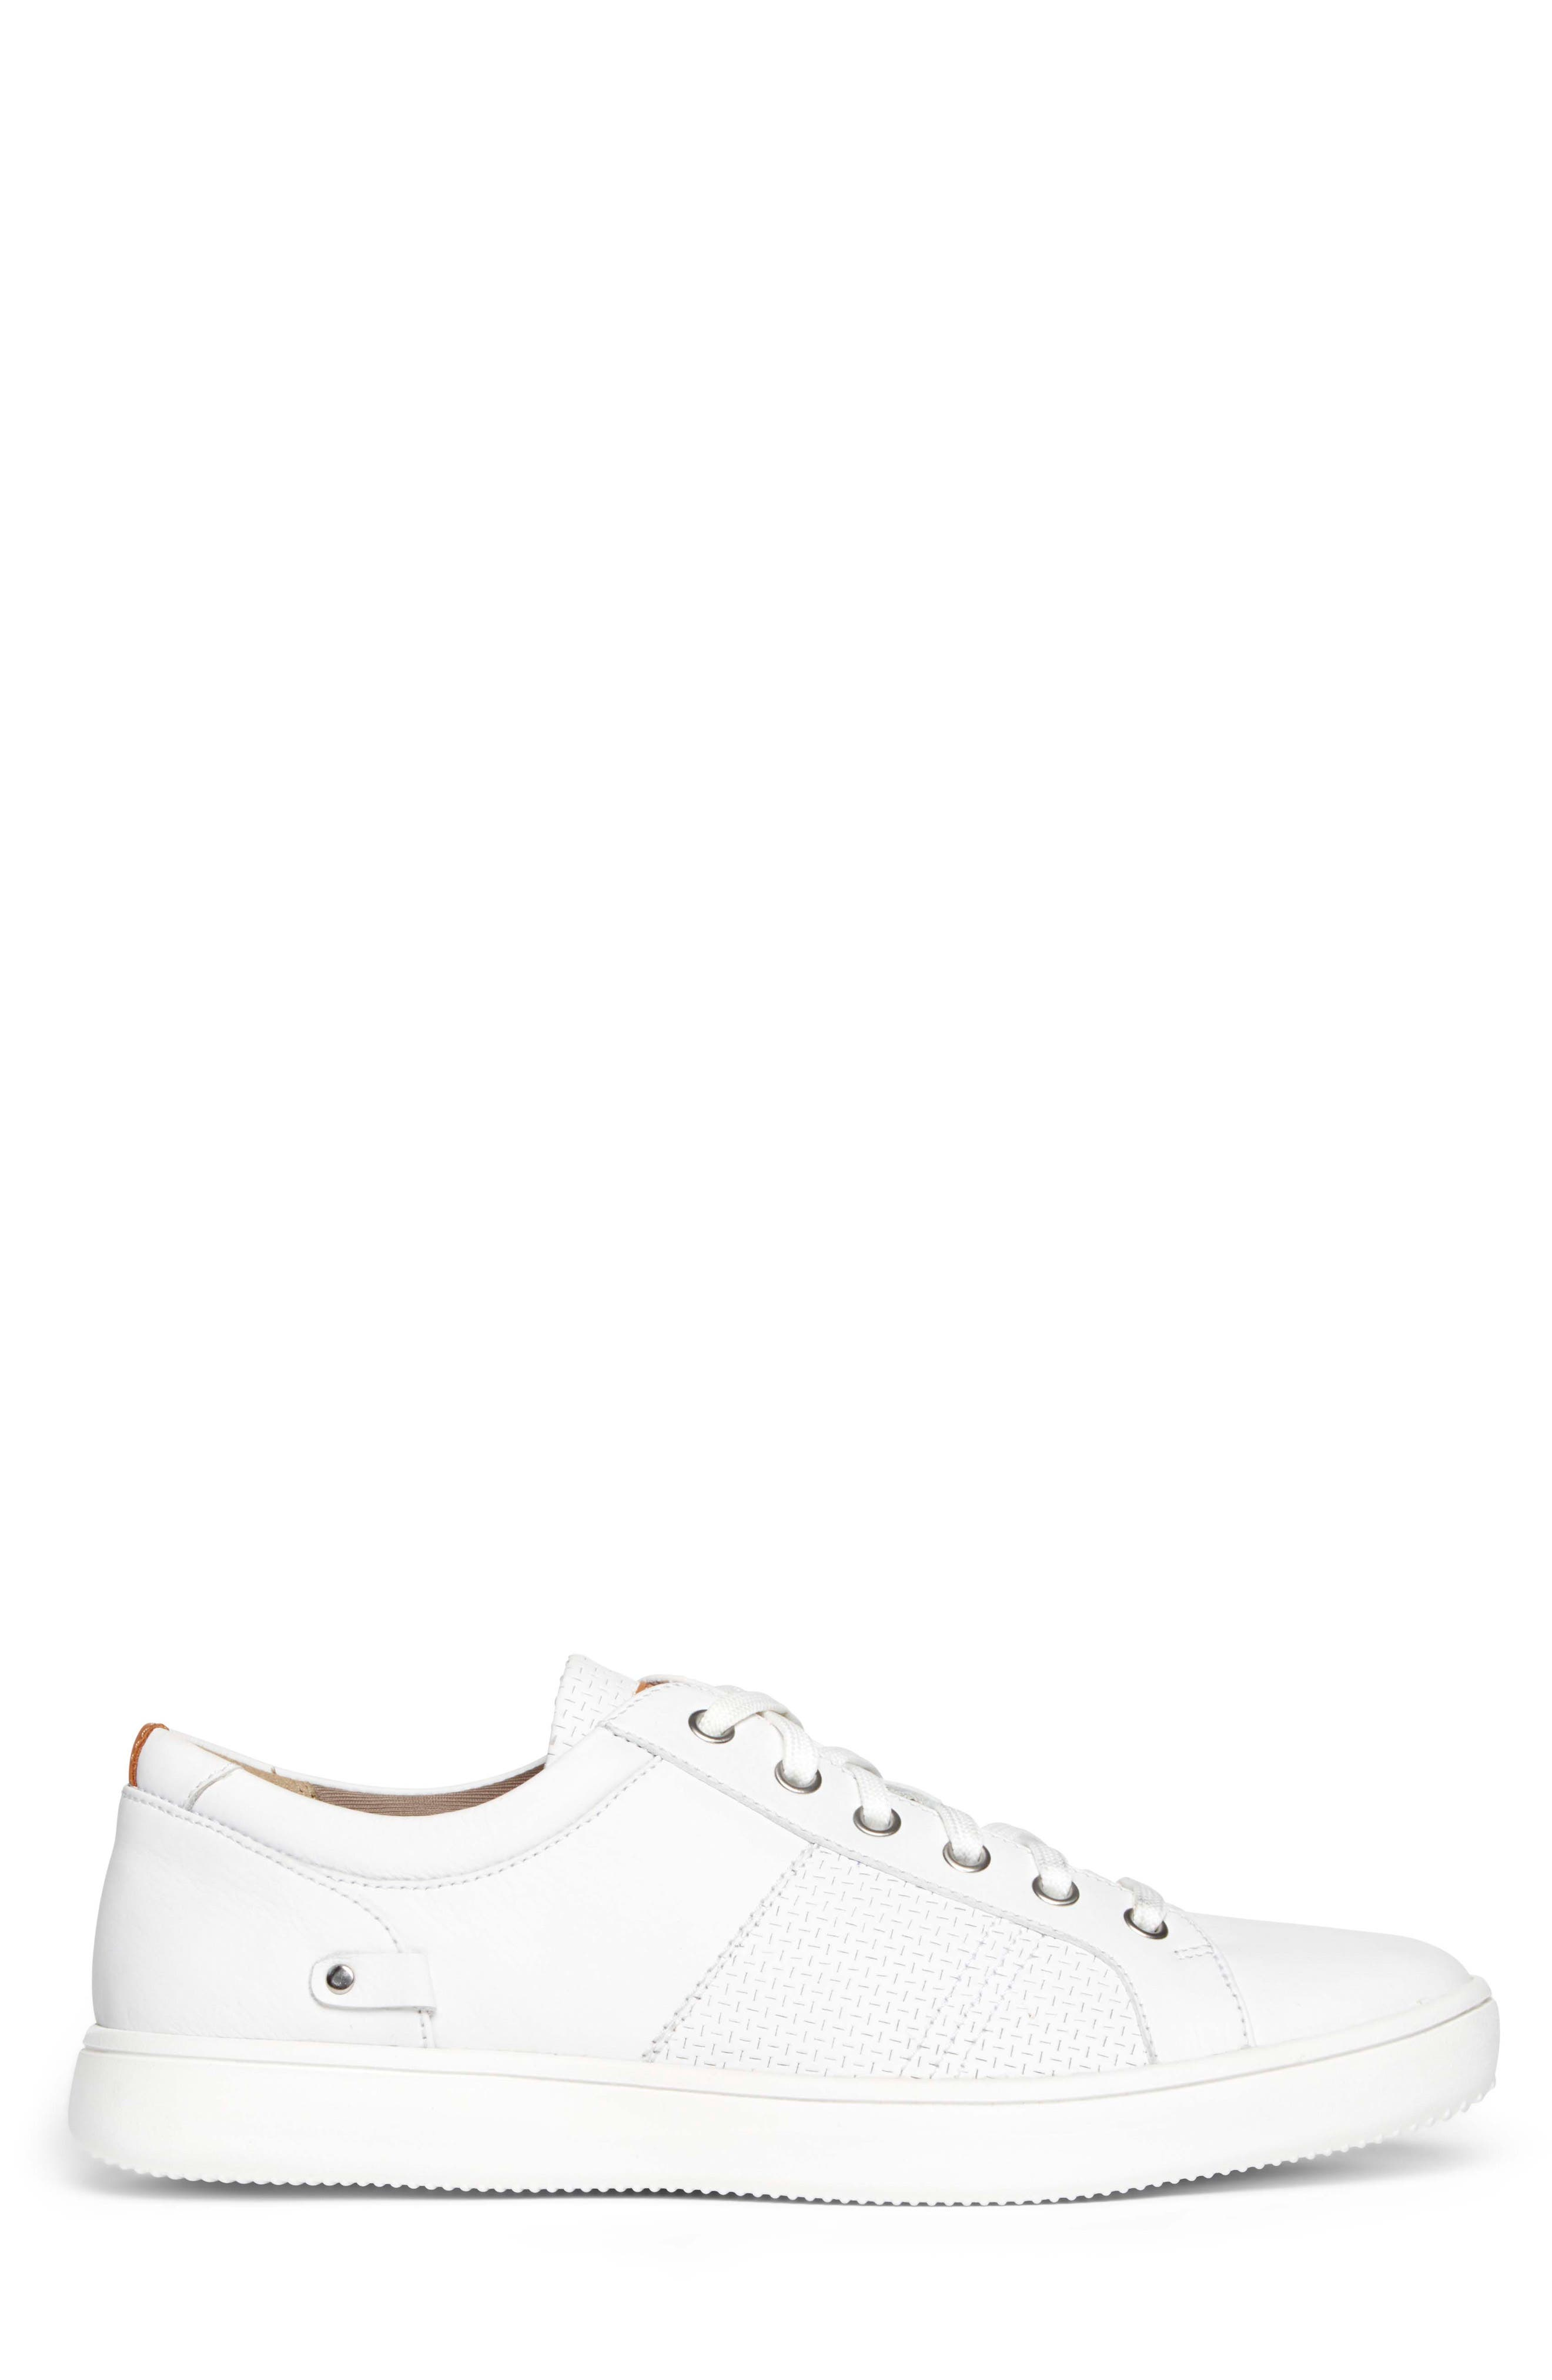 College Textured Sneaker,                             Alternate thumbnail 3, color,                             WHITE LEATHER